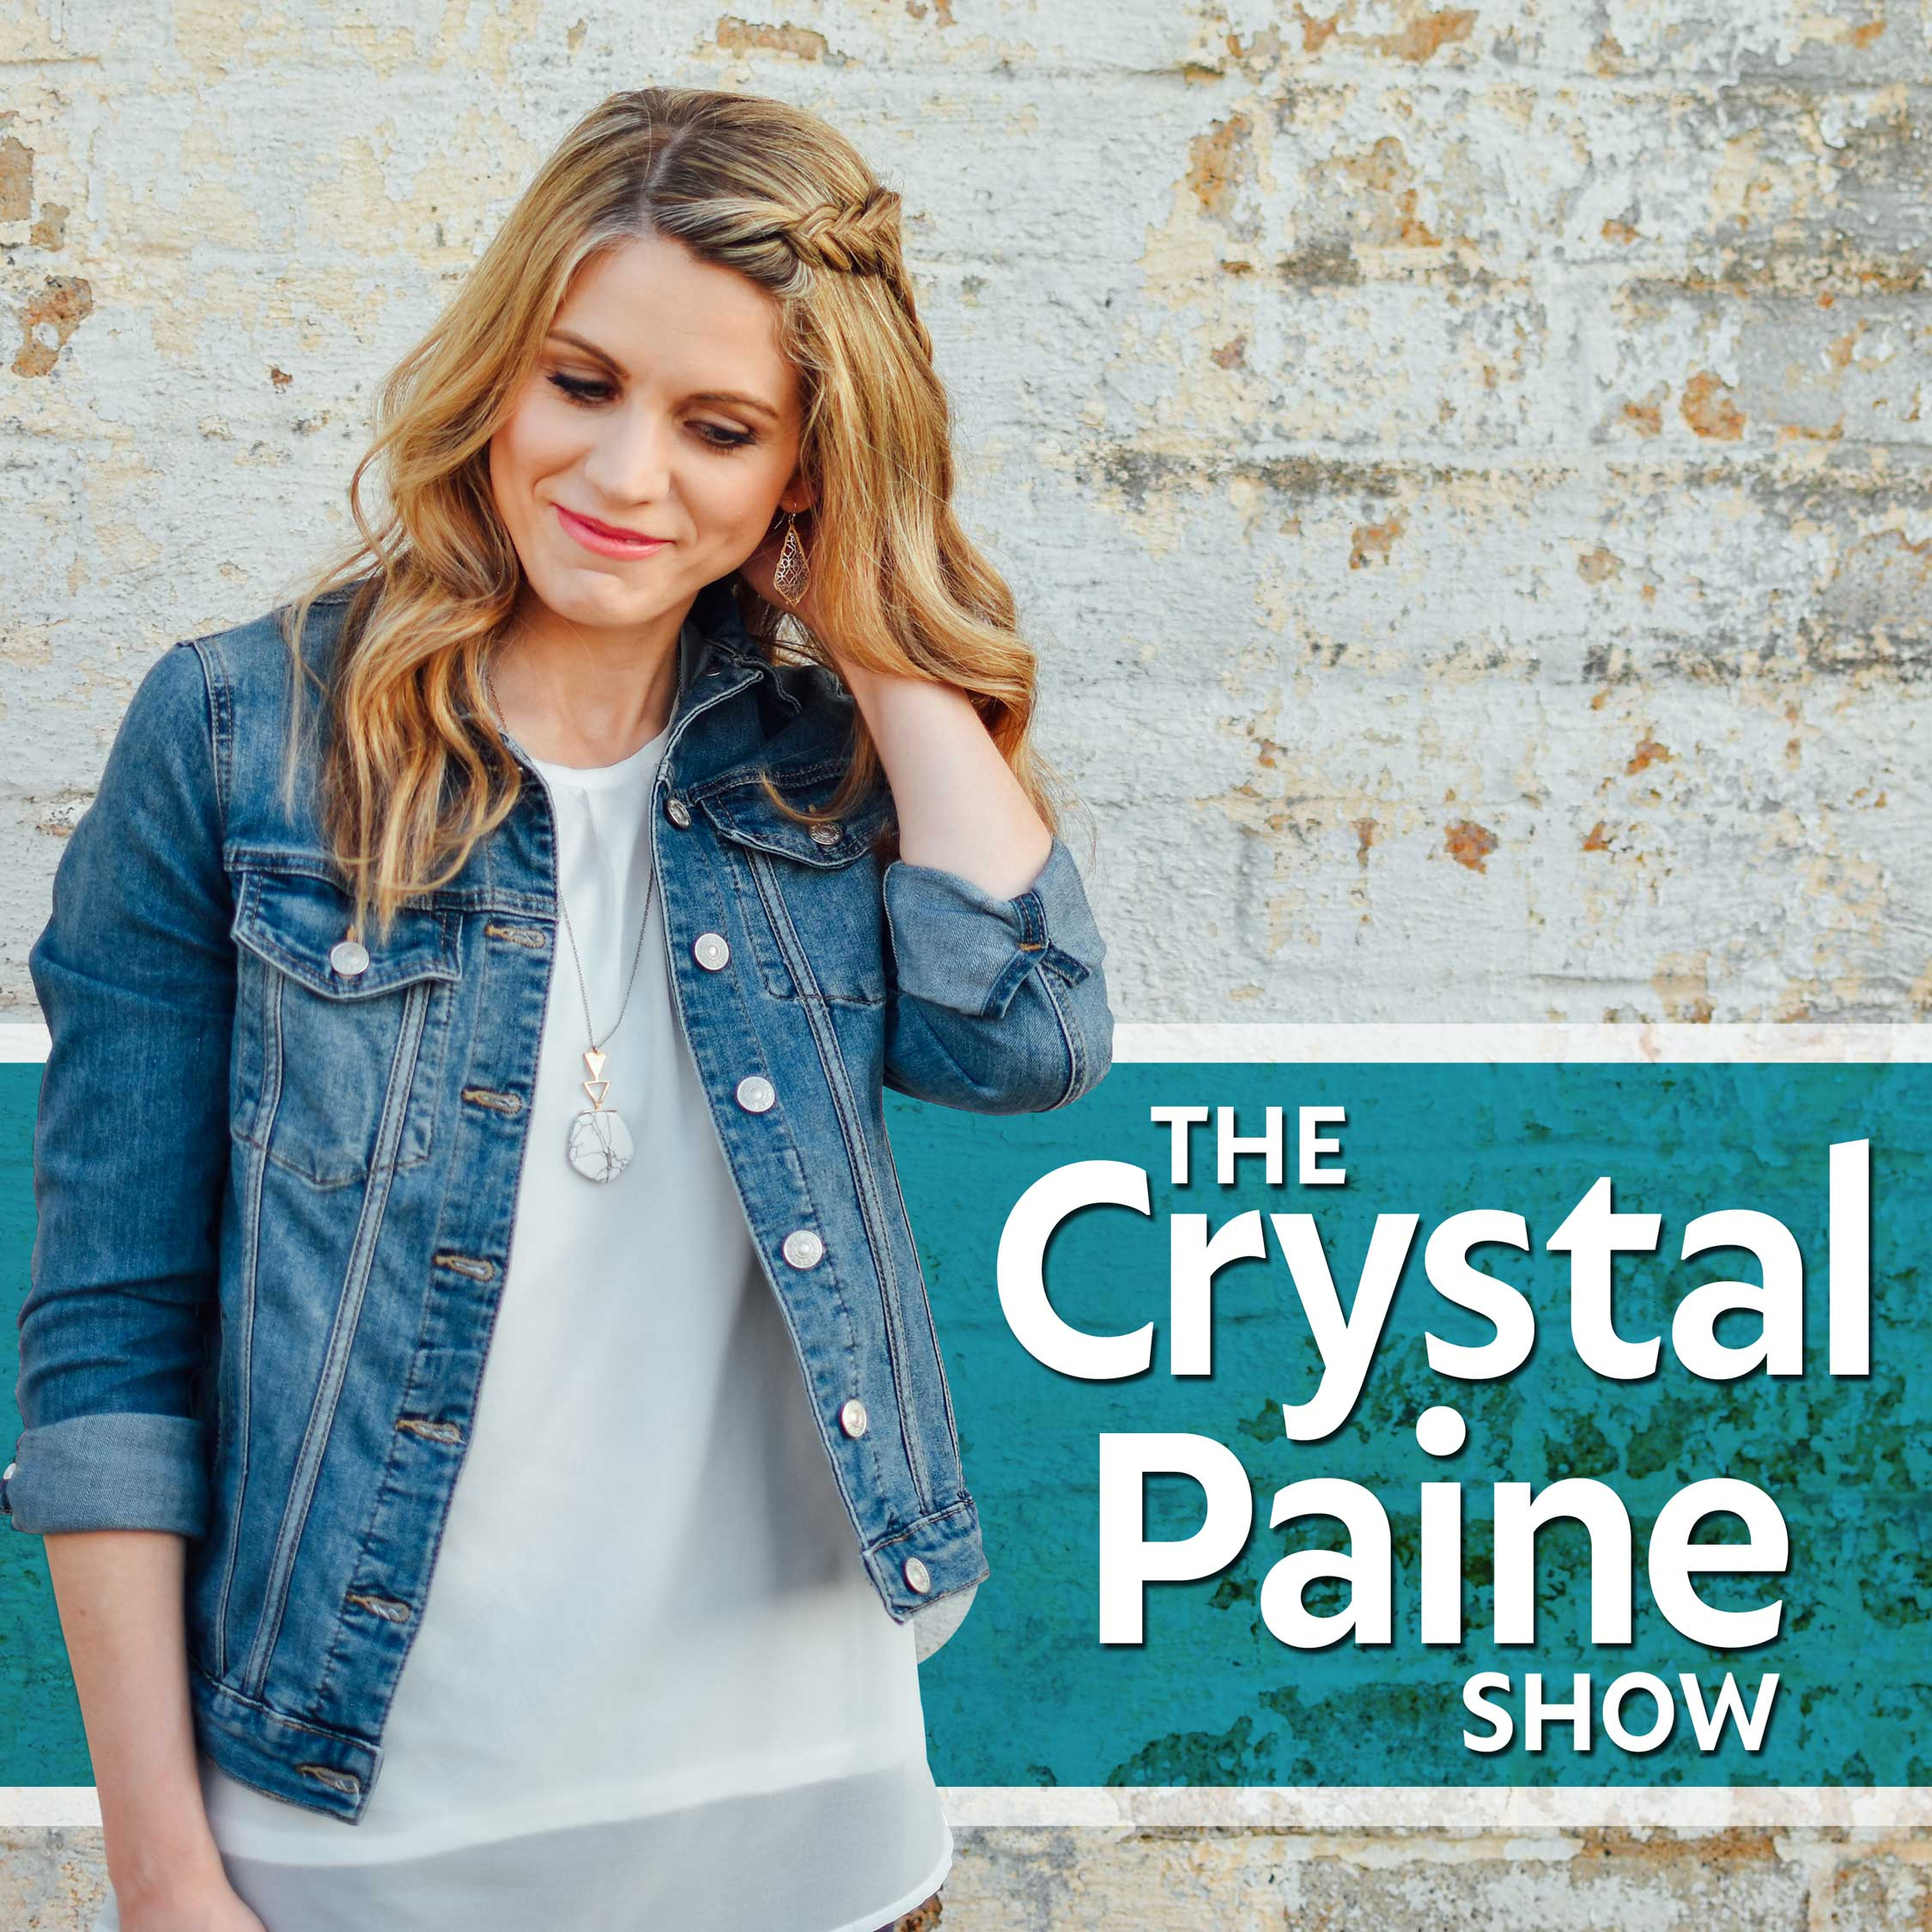 The Crystal Paine Show